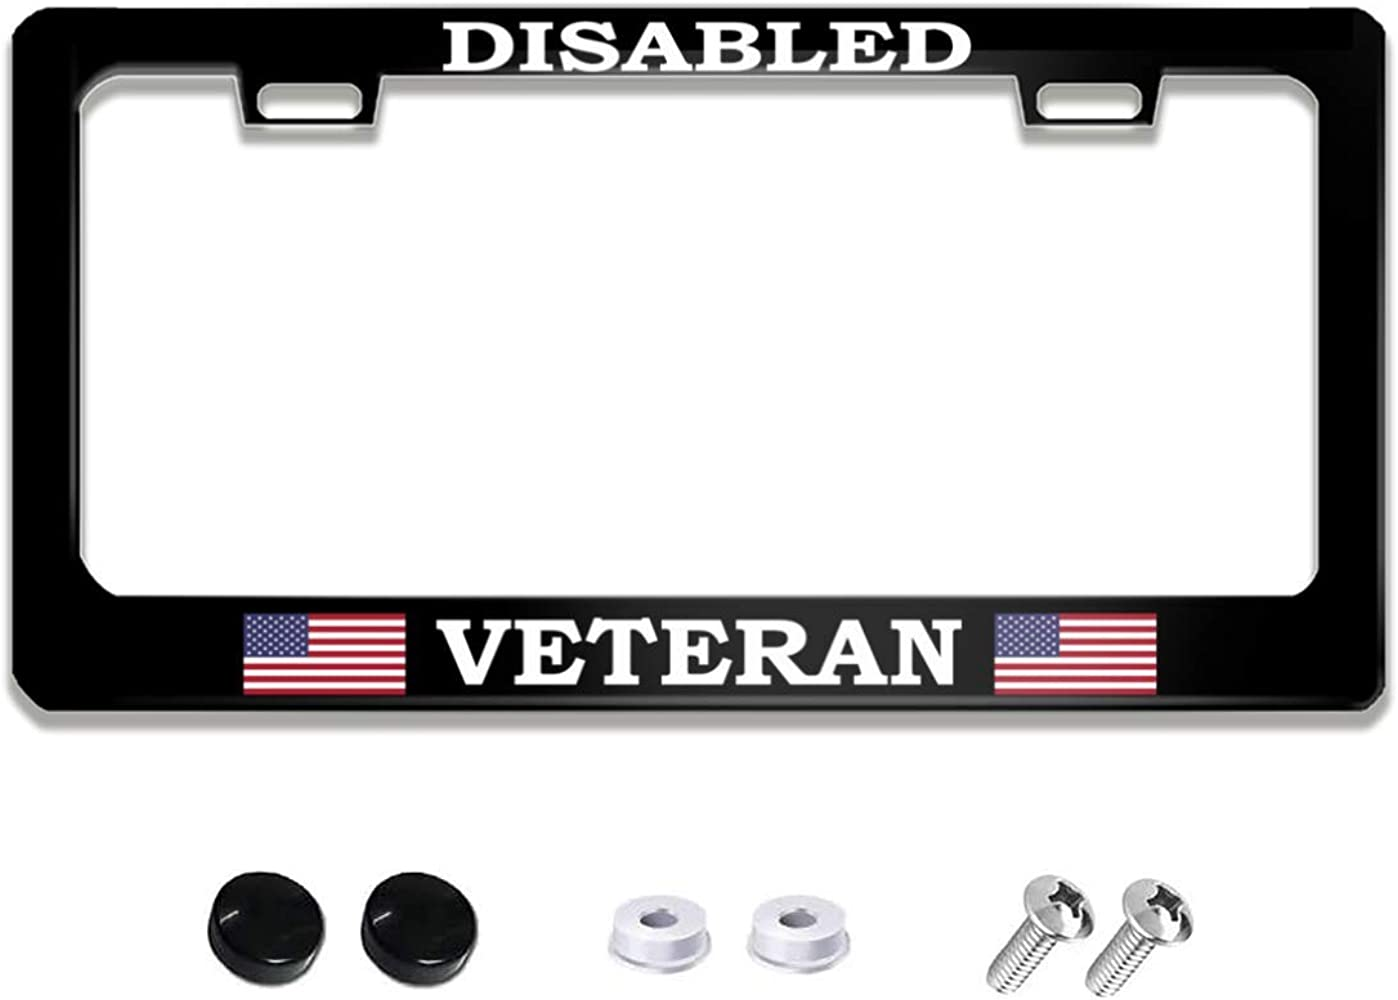 Disabled Veteran US Army Universal Black License Plate Frame Holder Aluminum Metal Auto License Tag Holder Funny